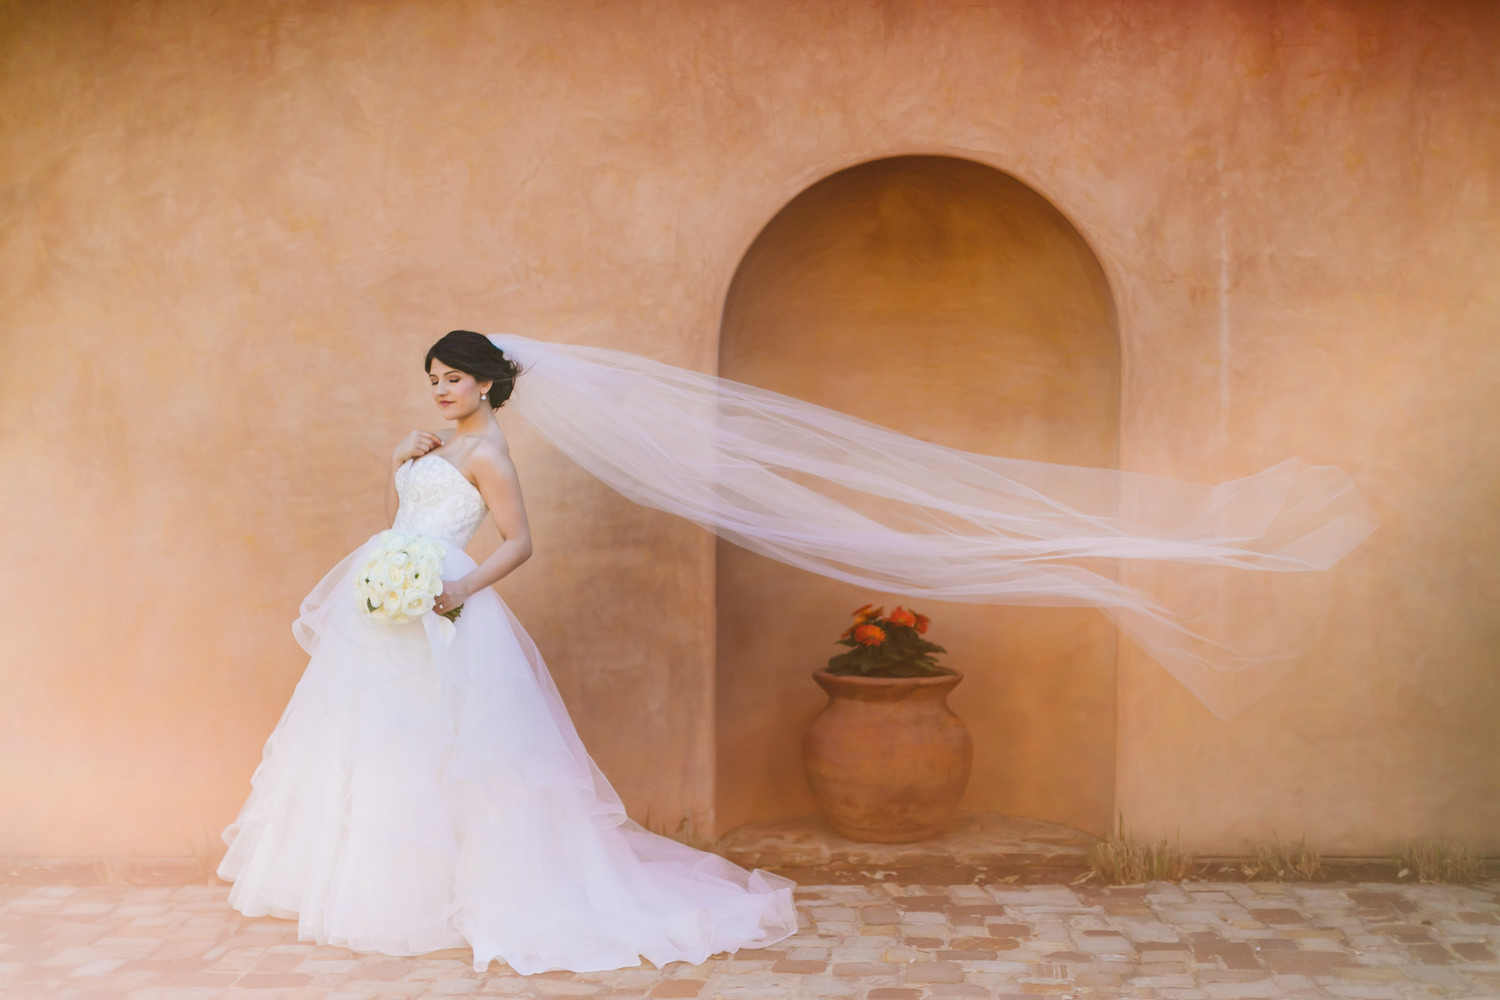 Bride portrait with veil in the wind - photo by AL Gawlik Photography